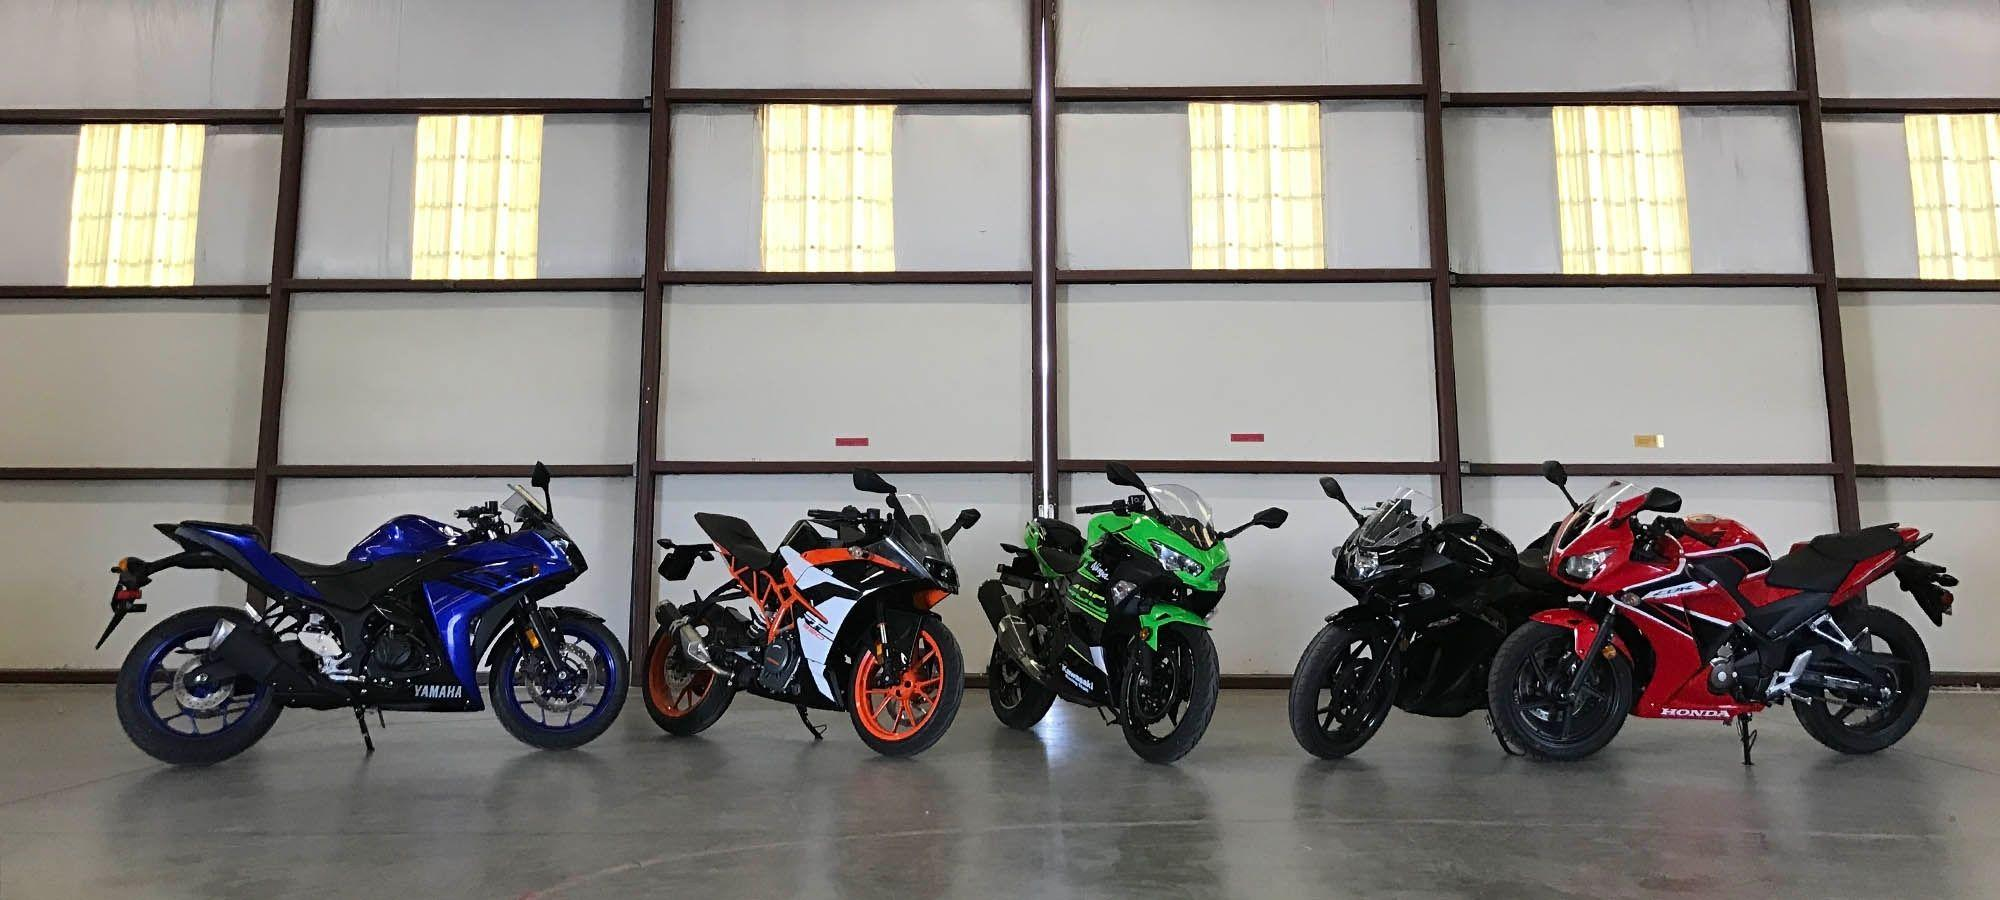 2018 small sportbike hangar hero